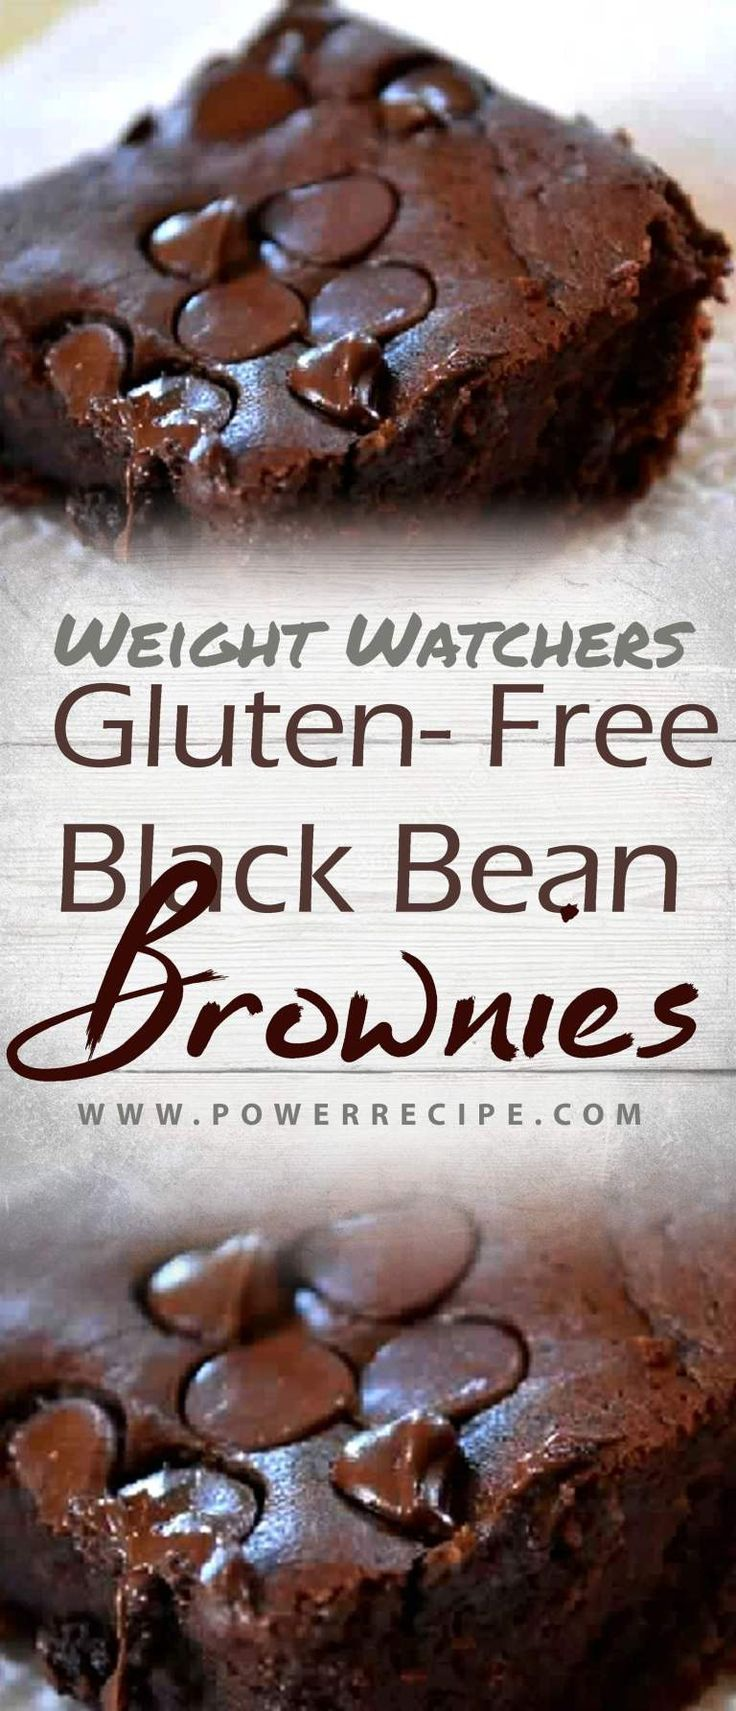 Gluten- Free Black Bean Brownies – All about Your Power Recipes